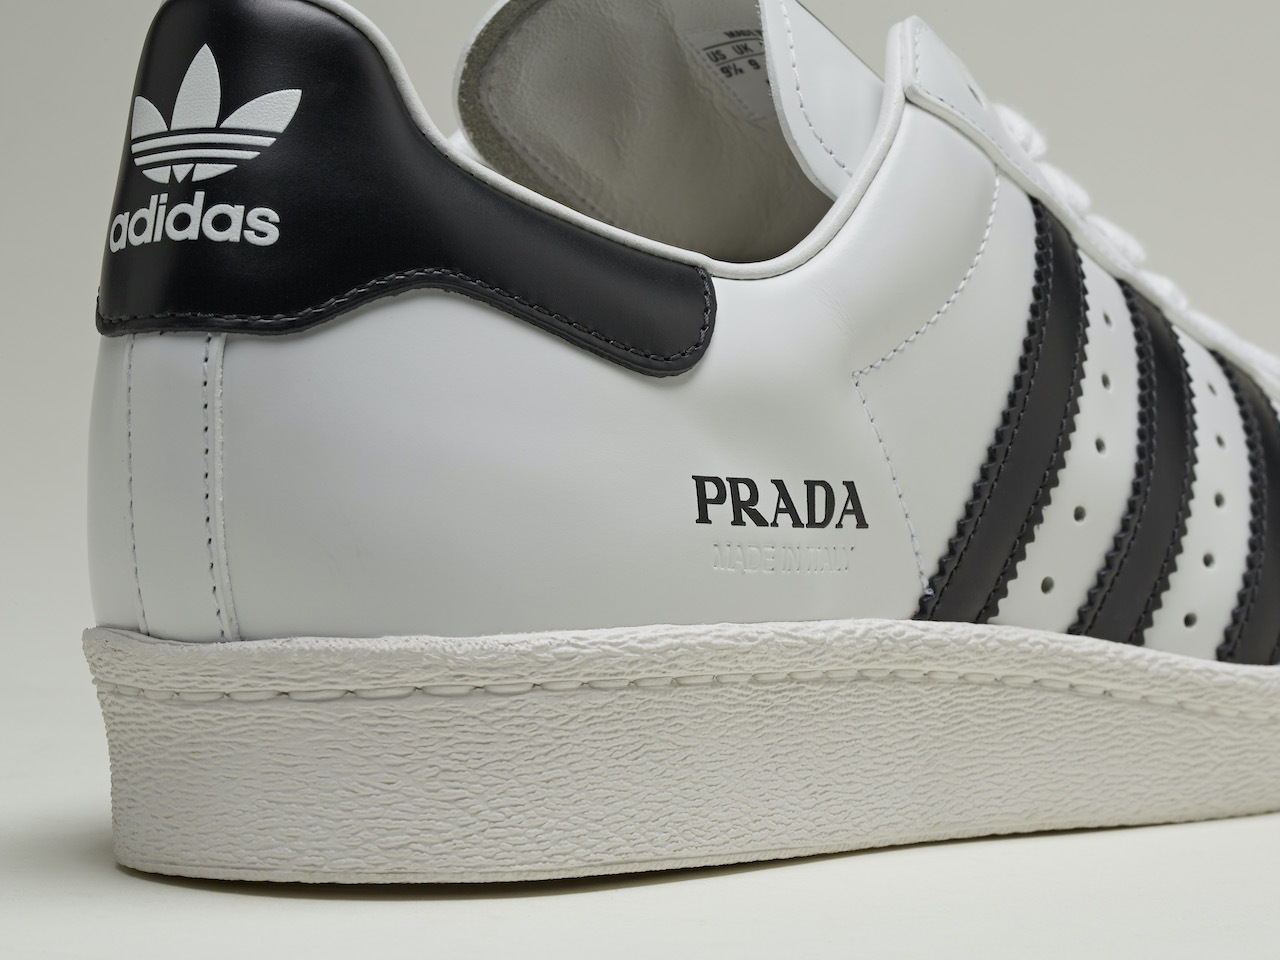 Prada x adidas Originals